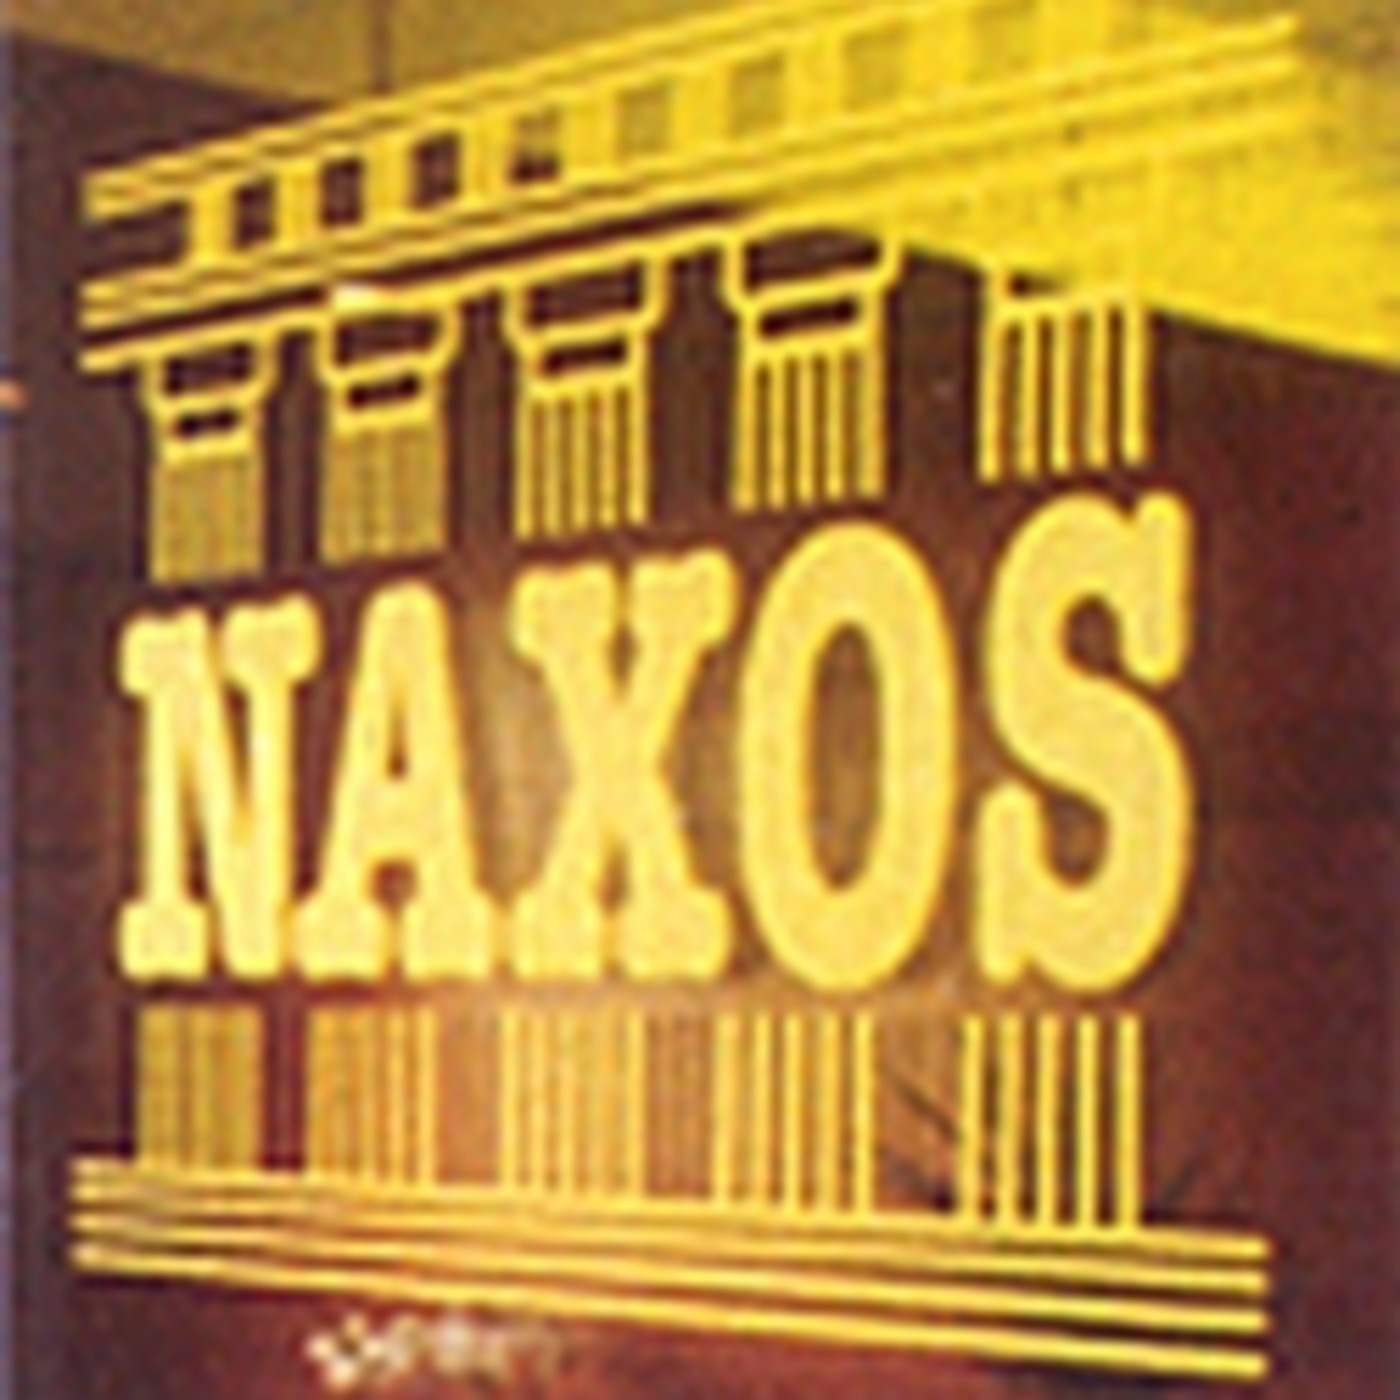 Naxos Online Music Library, Podcast E12- music technology education audio